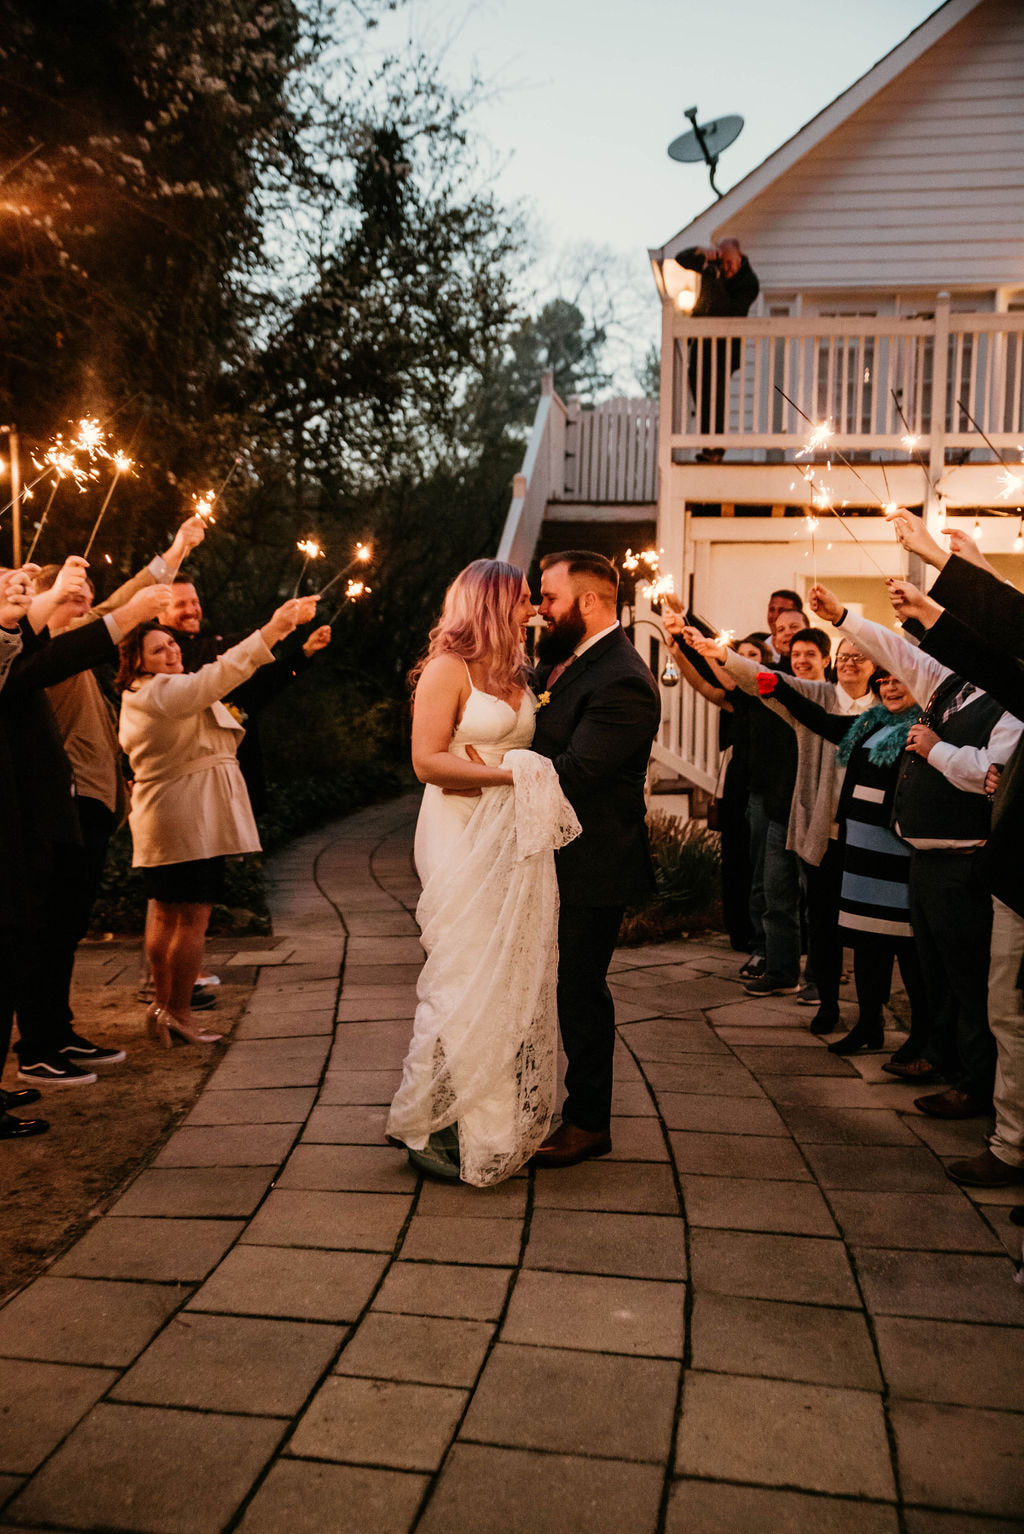 Couple smiling while guests look on during sparkler grand exit